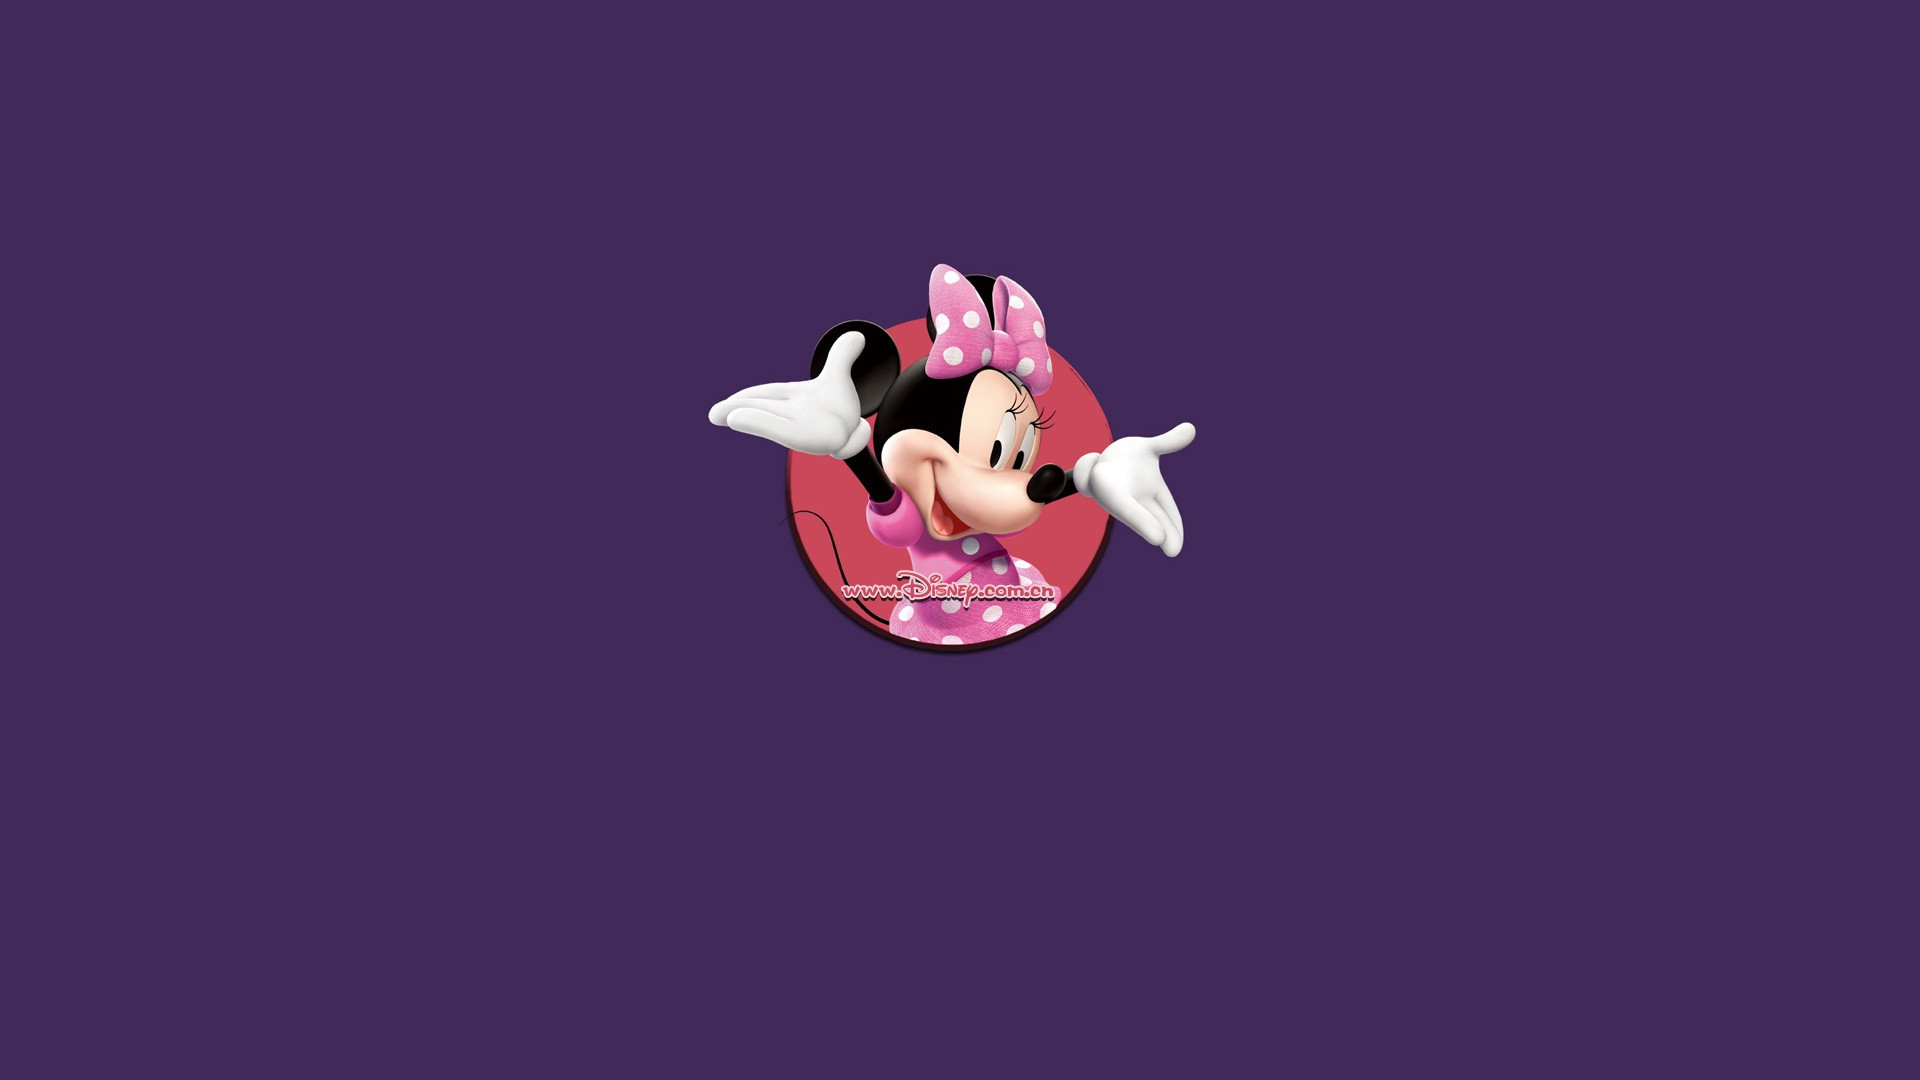 1920x1080 268 Best Minnie And Mickey Mouse Images On Draw. Cute Wallpaper